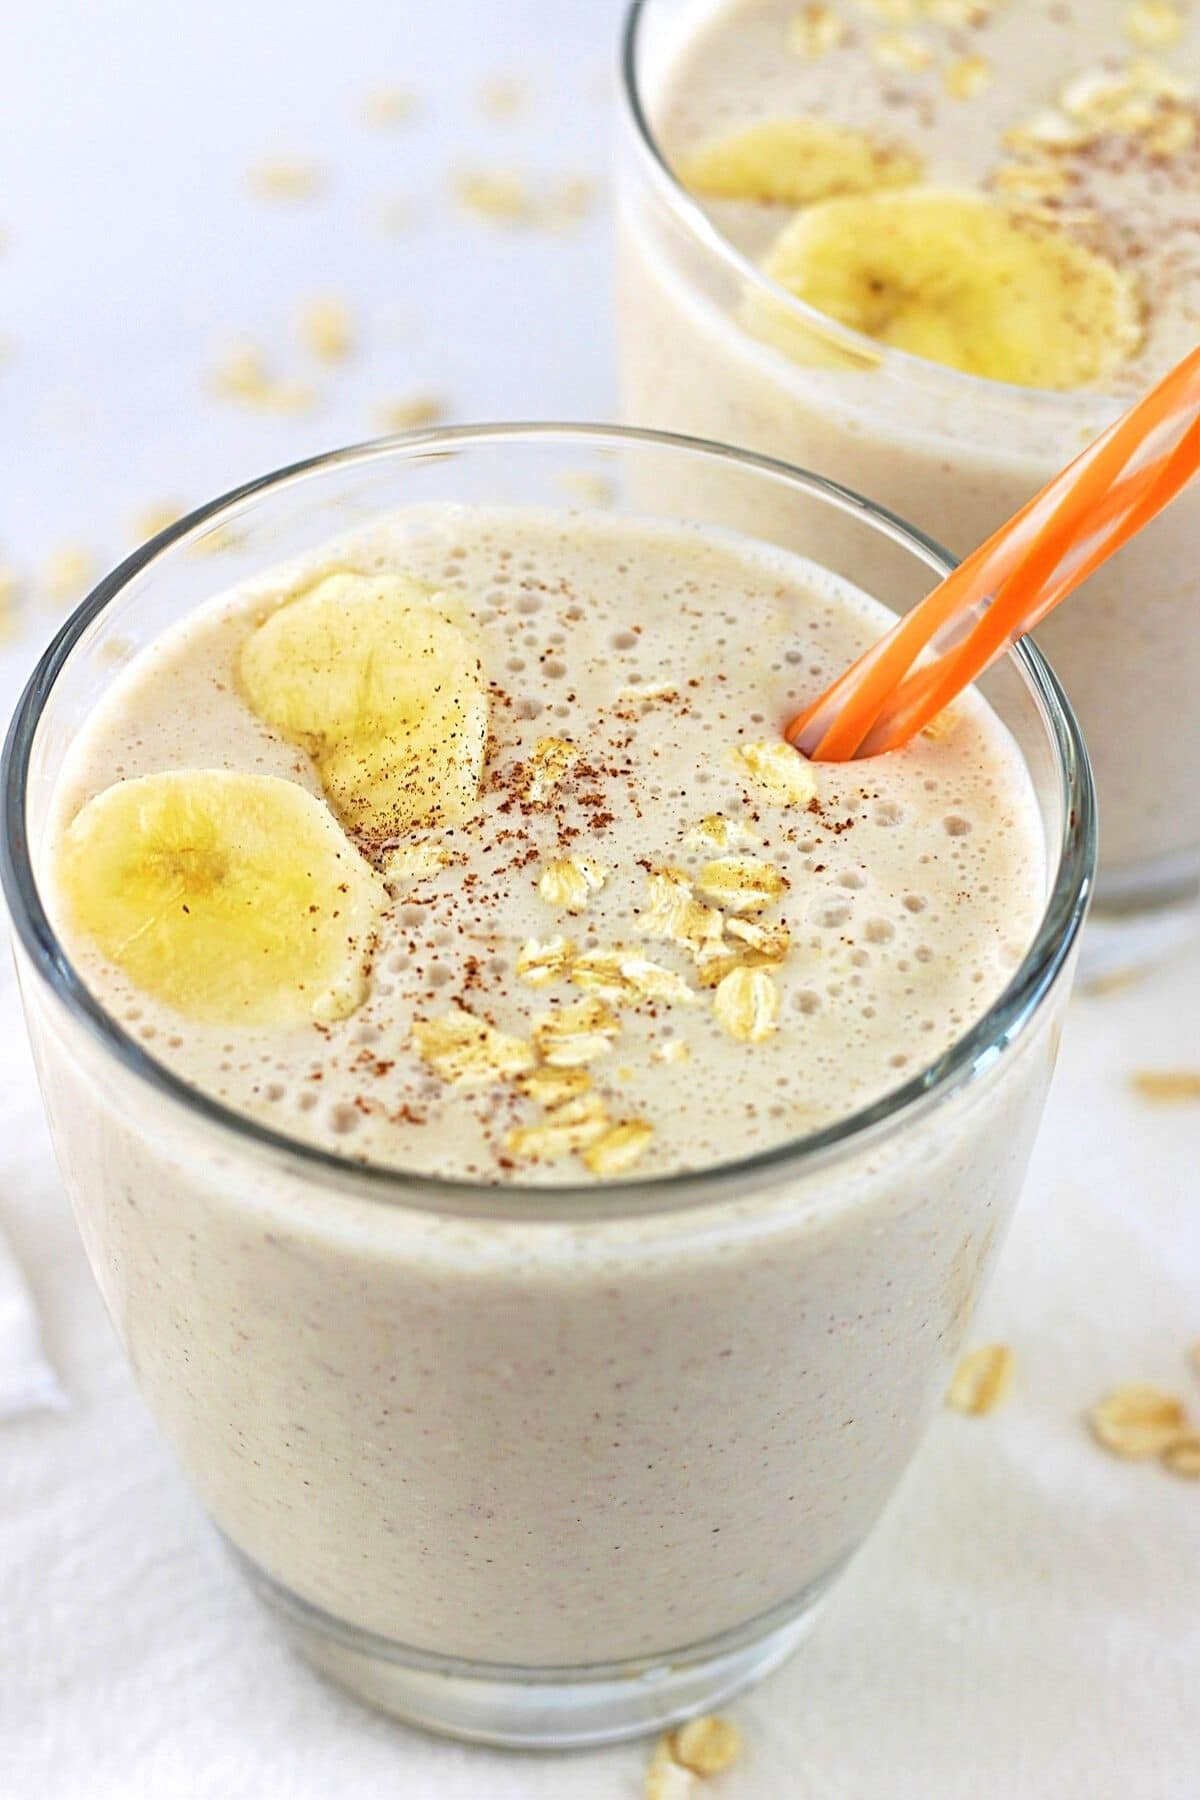 close-up of an oatmeal banana bread smoothie with a straw in it and a second smoothie in the background